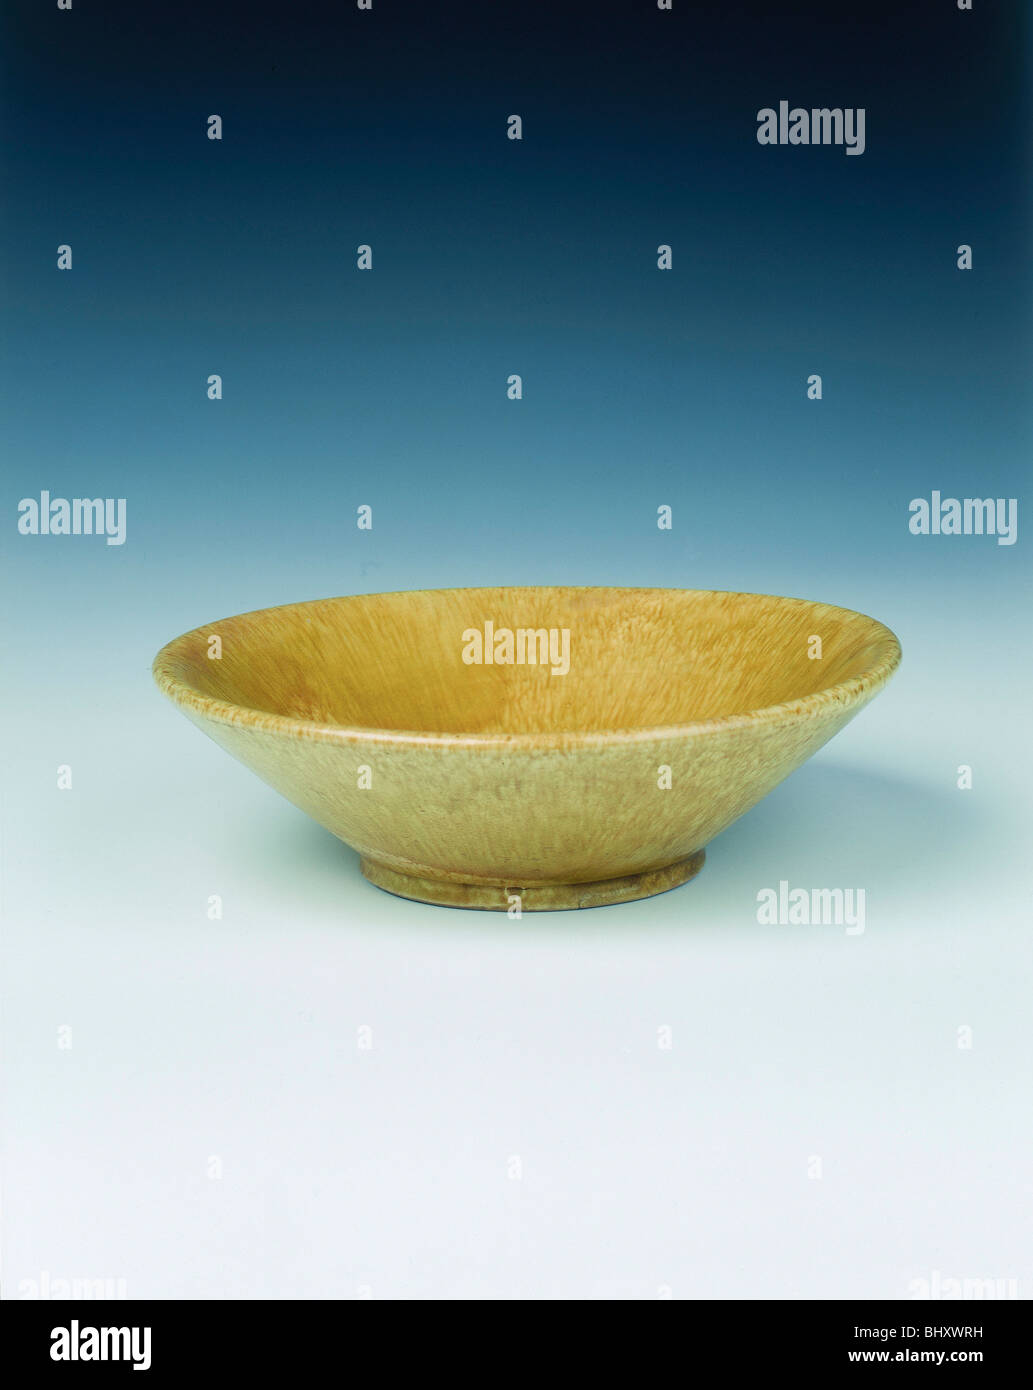 Yellow lead glazed bowl, late Tang dynasty, China, 9th century. - Stock Image